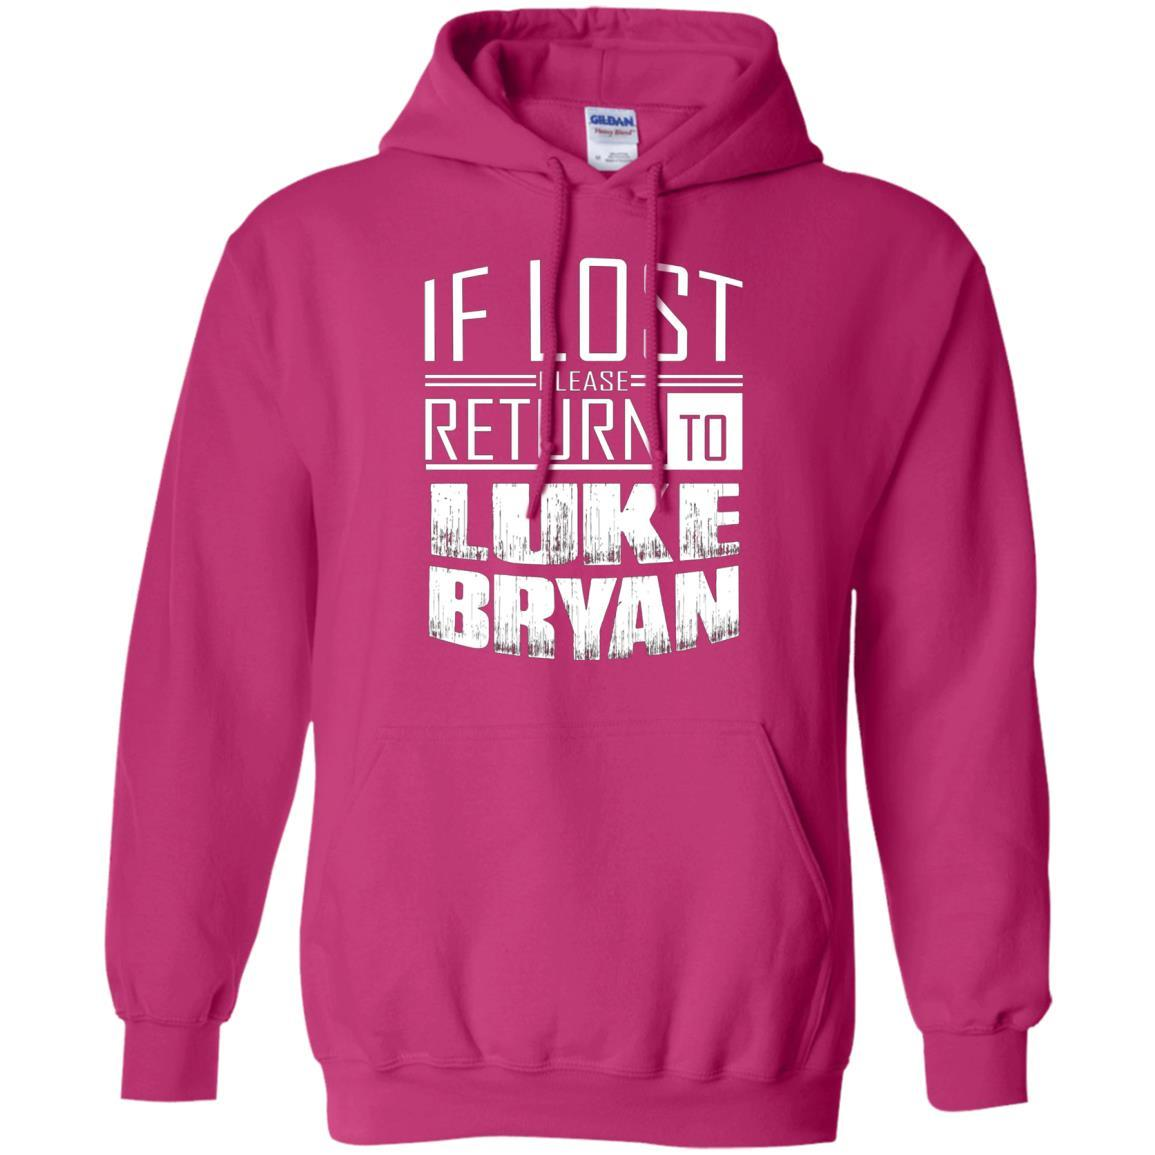 if lost please return to luke name bryan - Pullover Hoodie Heliconia / 5XL